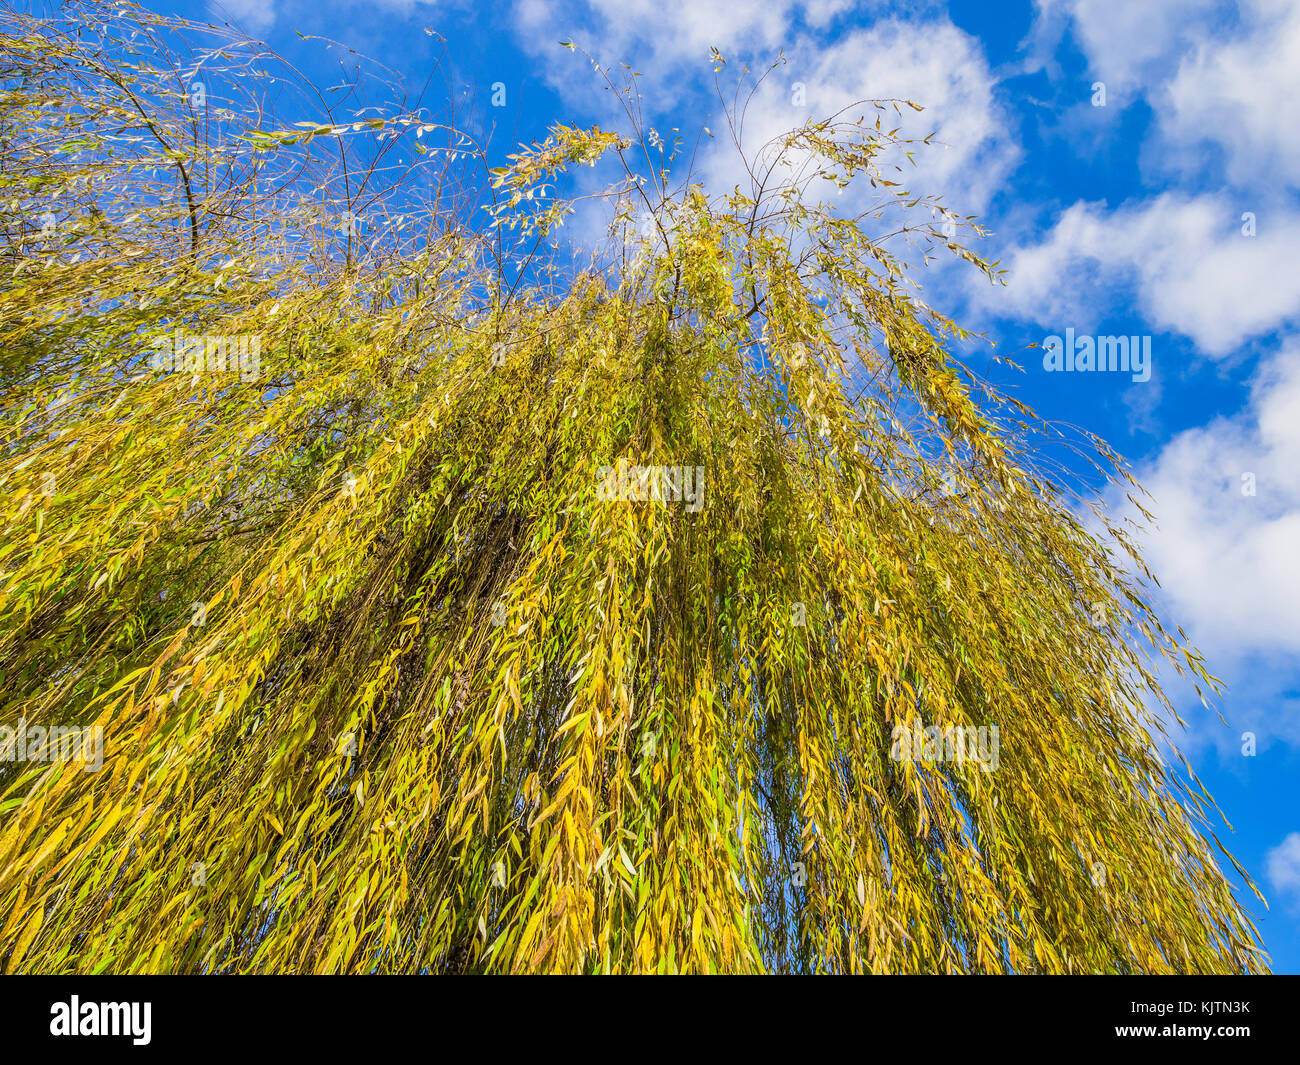 Leaves of Willow tree turning colour in autumn. - Stock Image